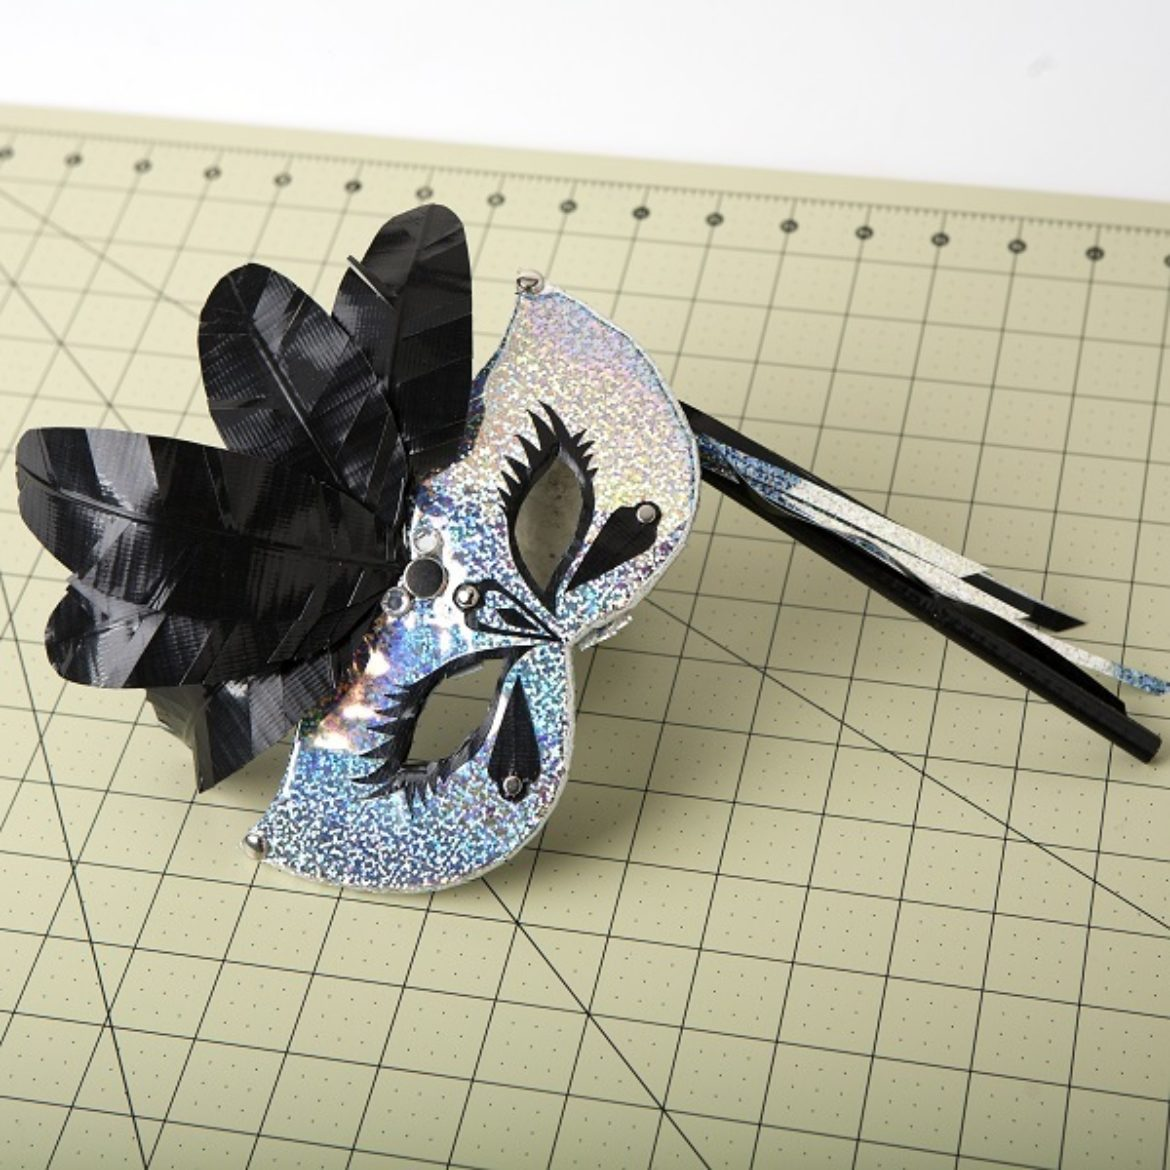 Completed mask with multiple Duck Tape feathers and other embellishments